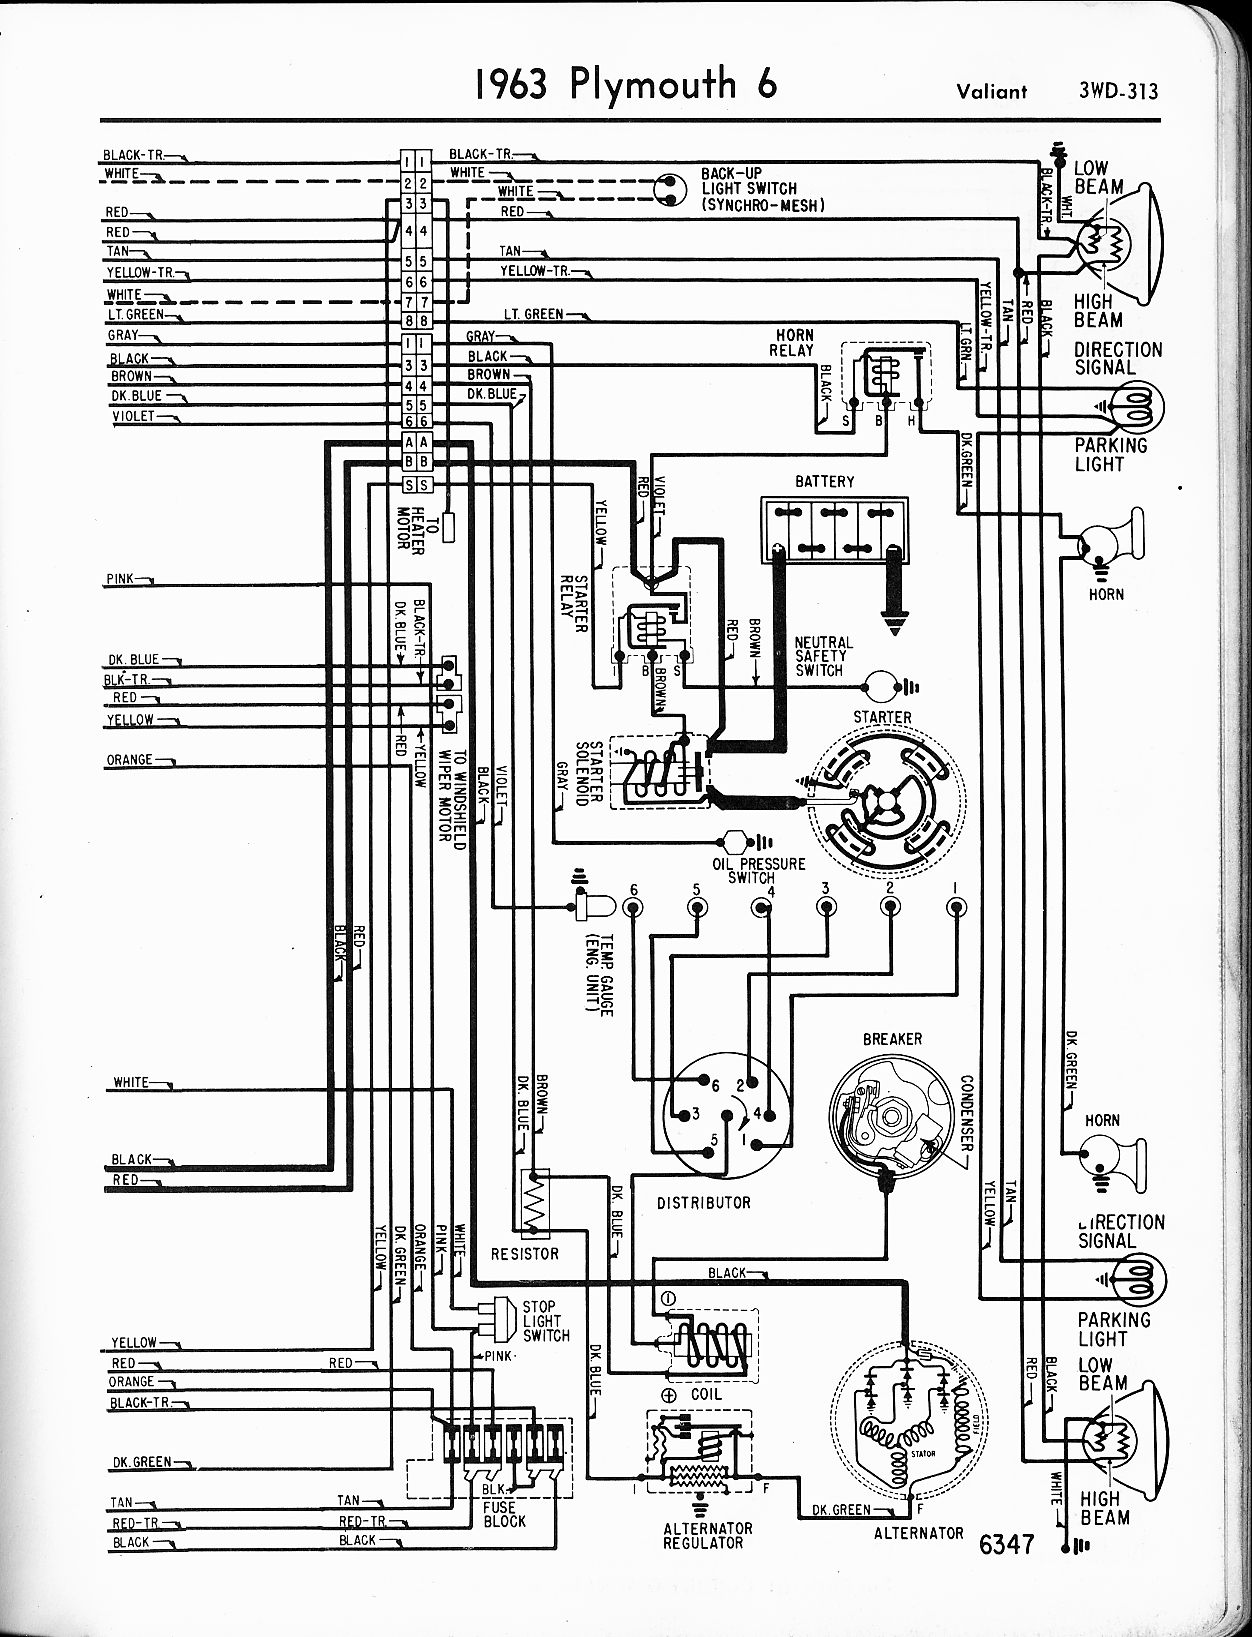 1956 - 1965 Plymouth Wiring - The Old Car Manual Project Headlight Switch Wiring Diagram For Olds on